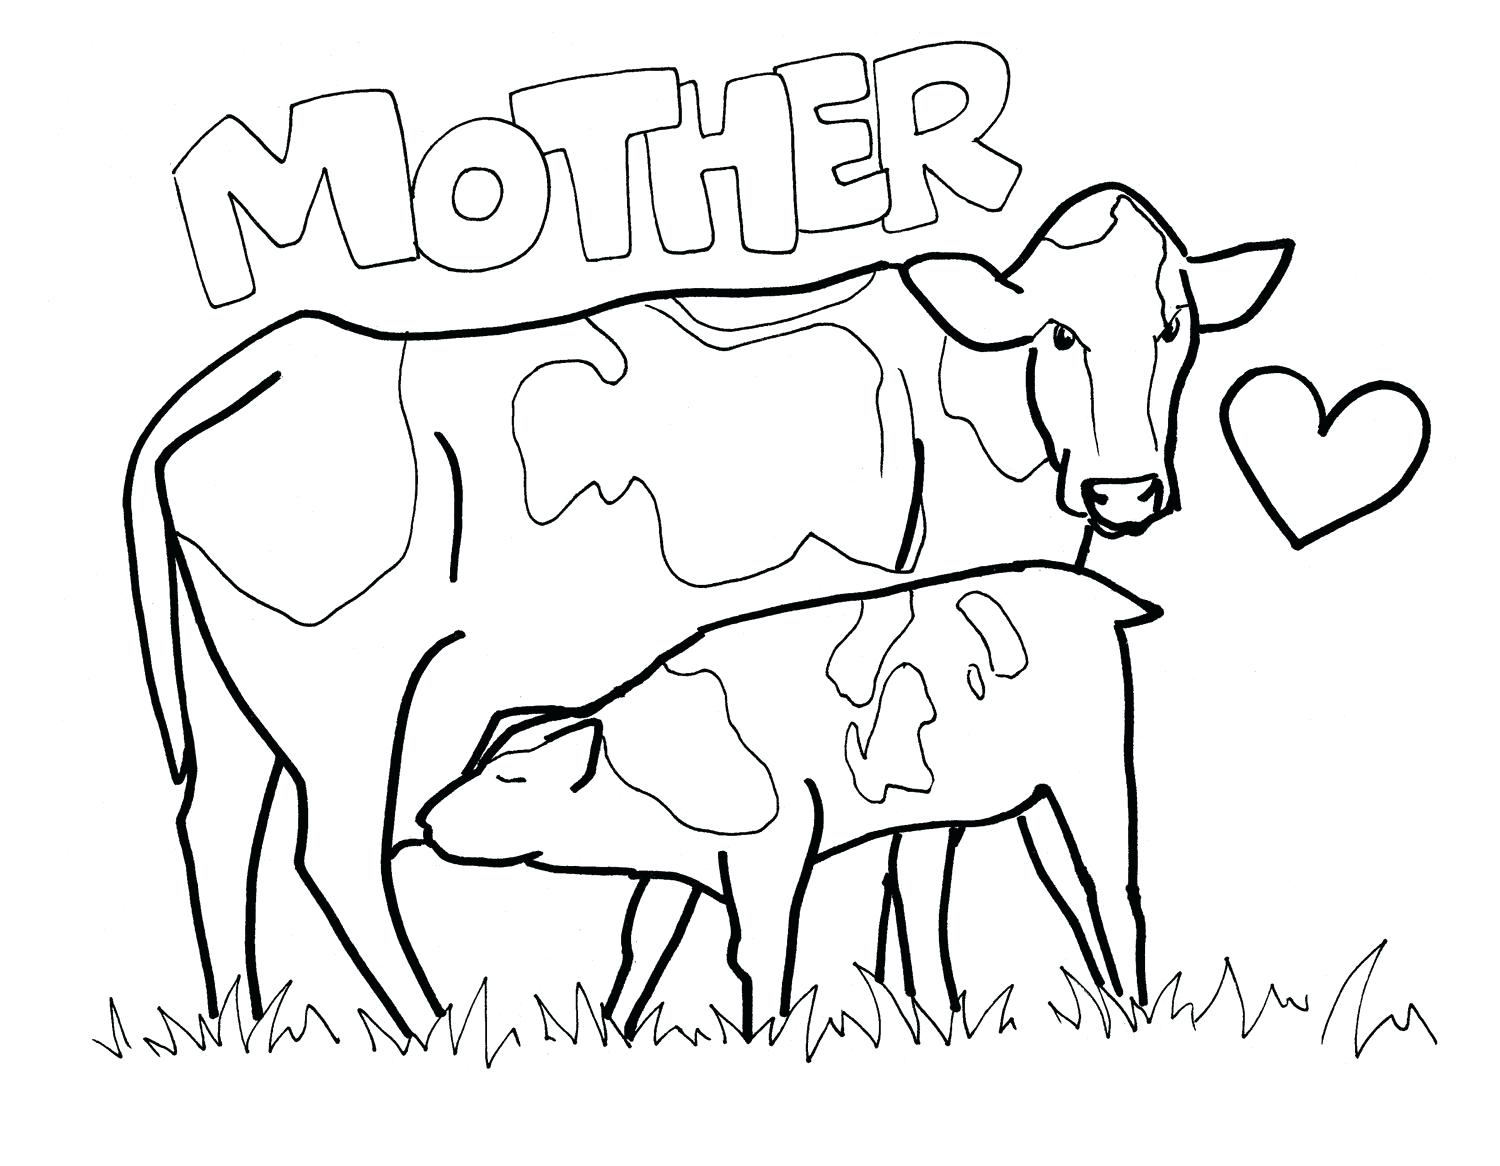 1500x1166 Coloring Pages Christmas Vector Illustration Cartoon Cow Book